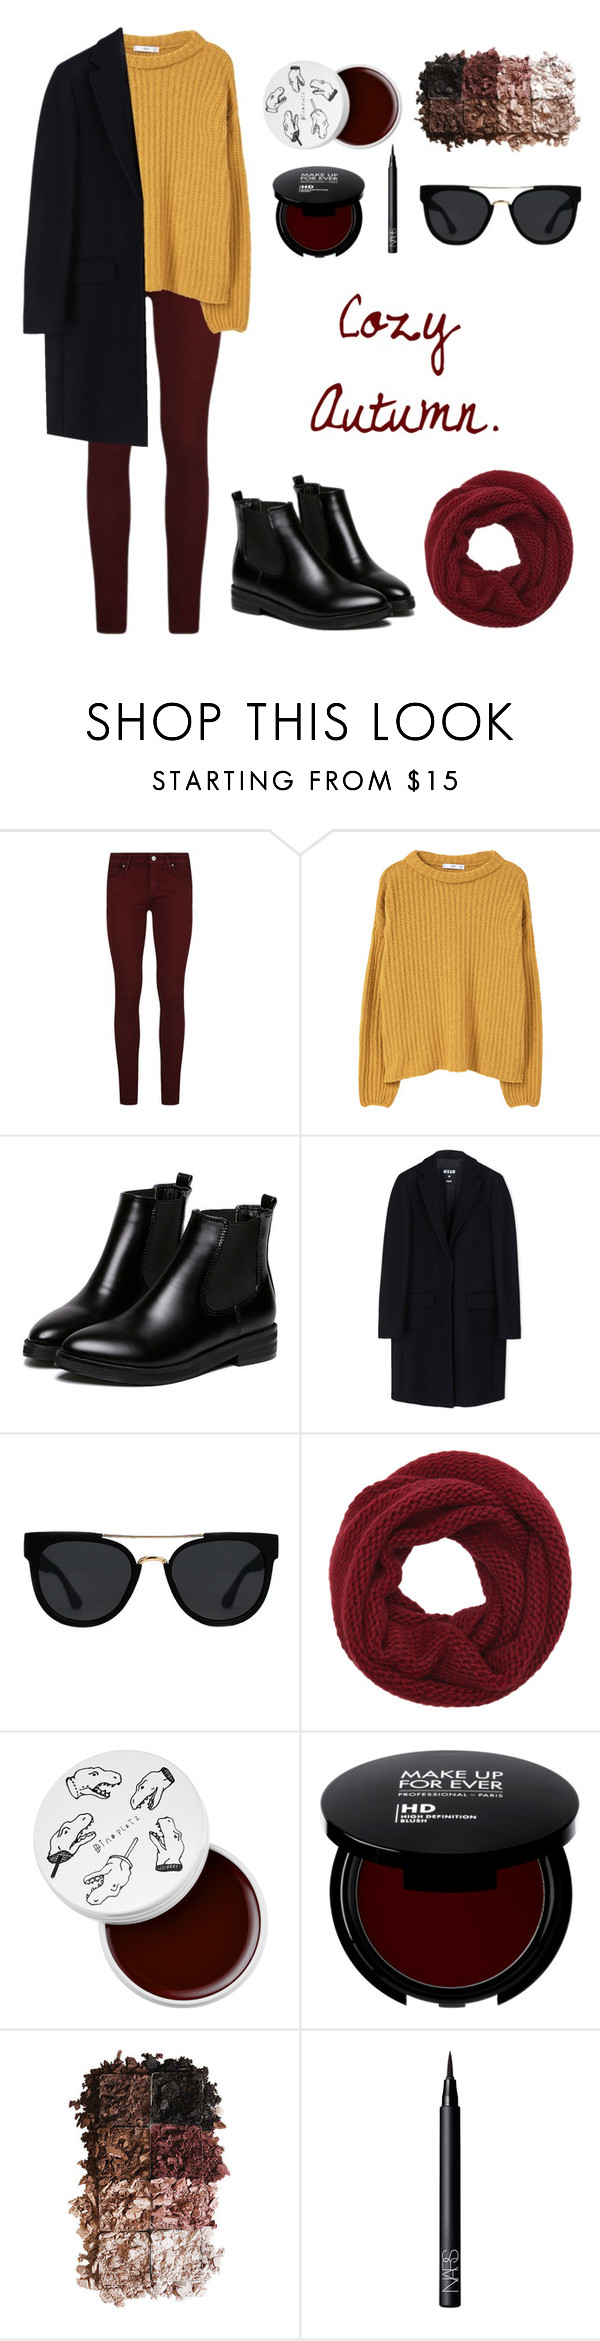 """""""Warm and sunshine."""" by killerfromnewgersey ❤ liked on Polyvore featuring Paige Denim, MANGO, WithChic, MSGM, Quay, Wyatt, too cool for school, LORAC and NARS Cosmetics"""